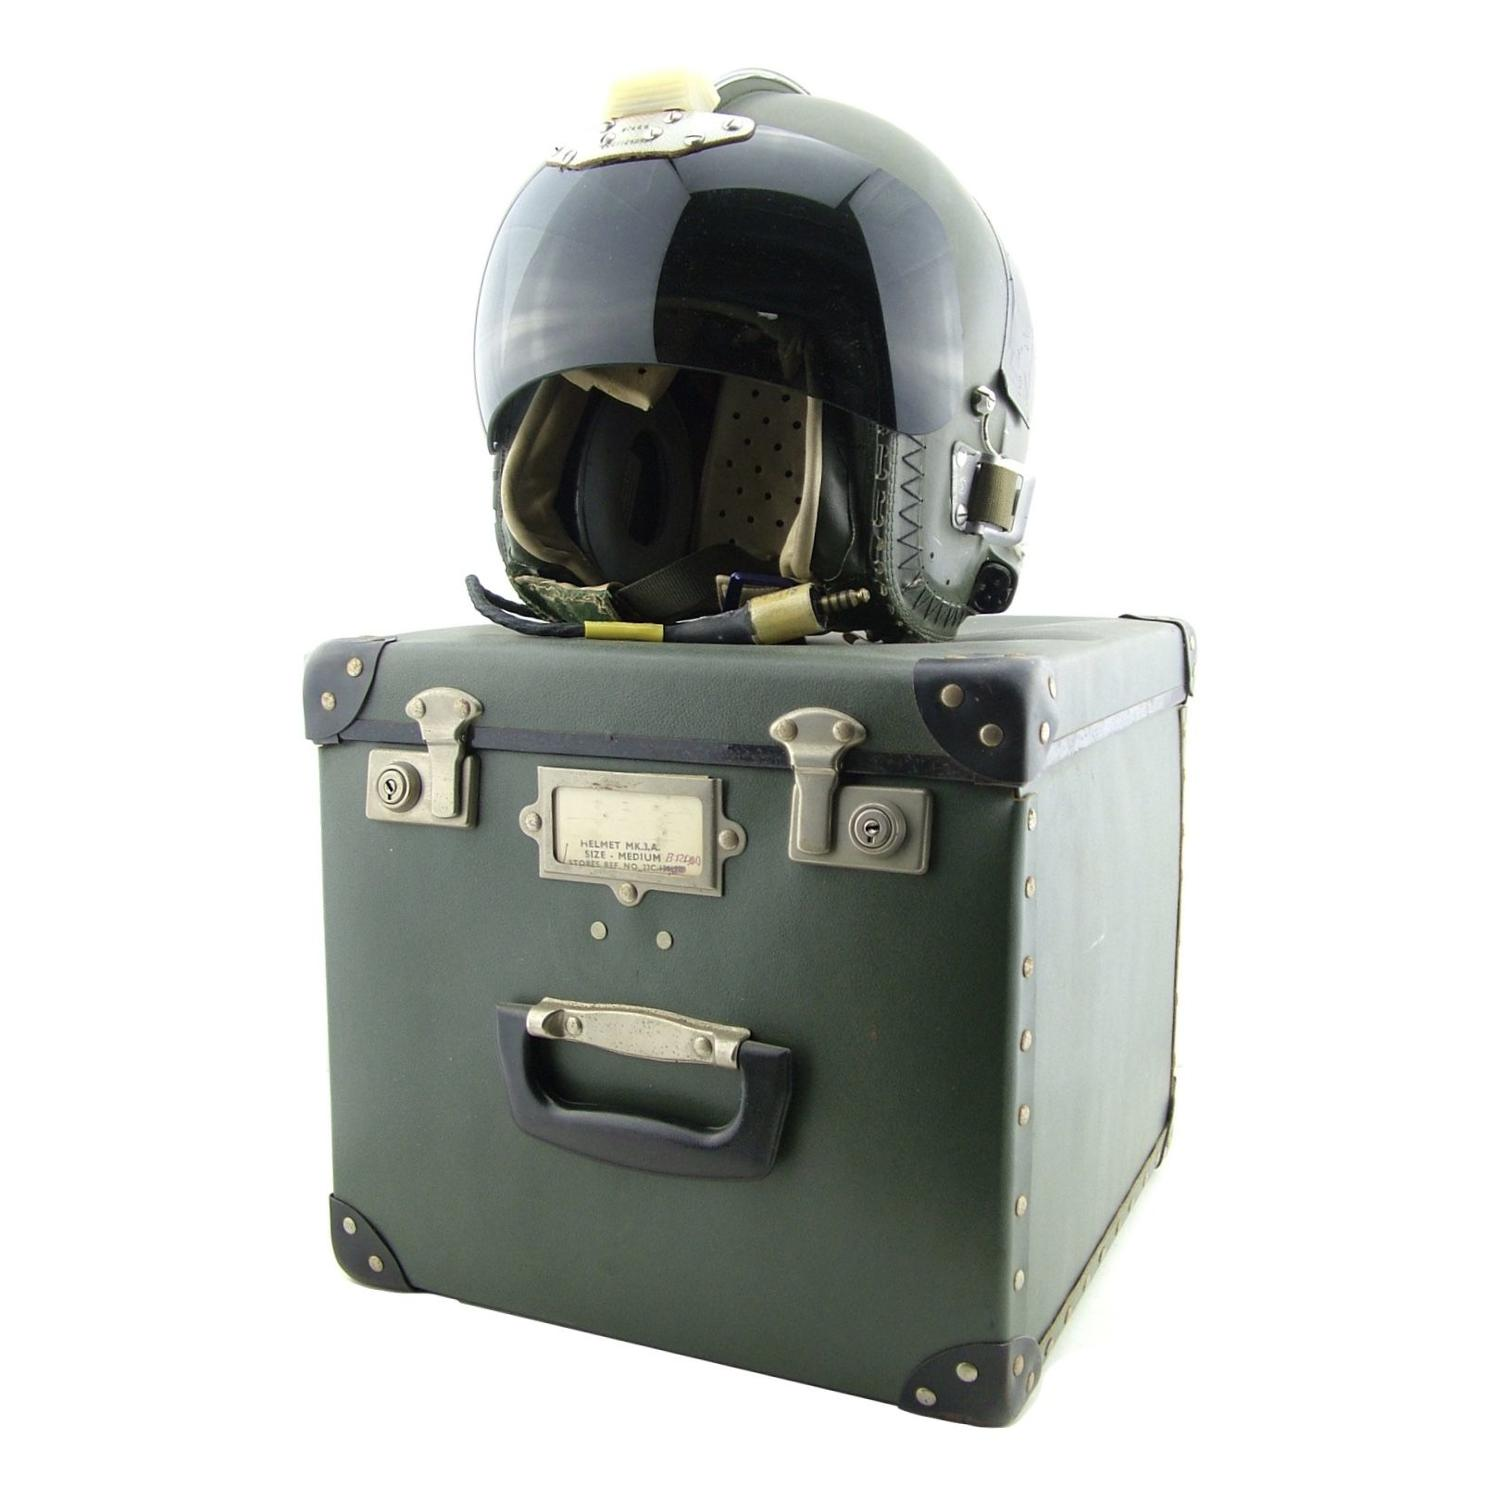 RAF Mk.3A flying helmet, cased